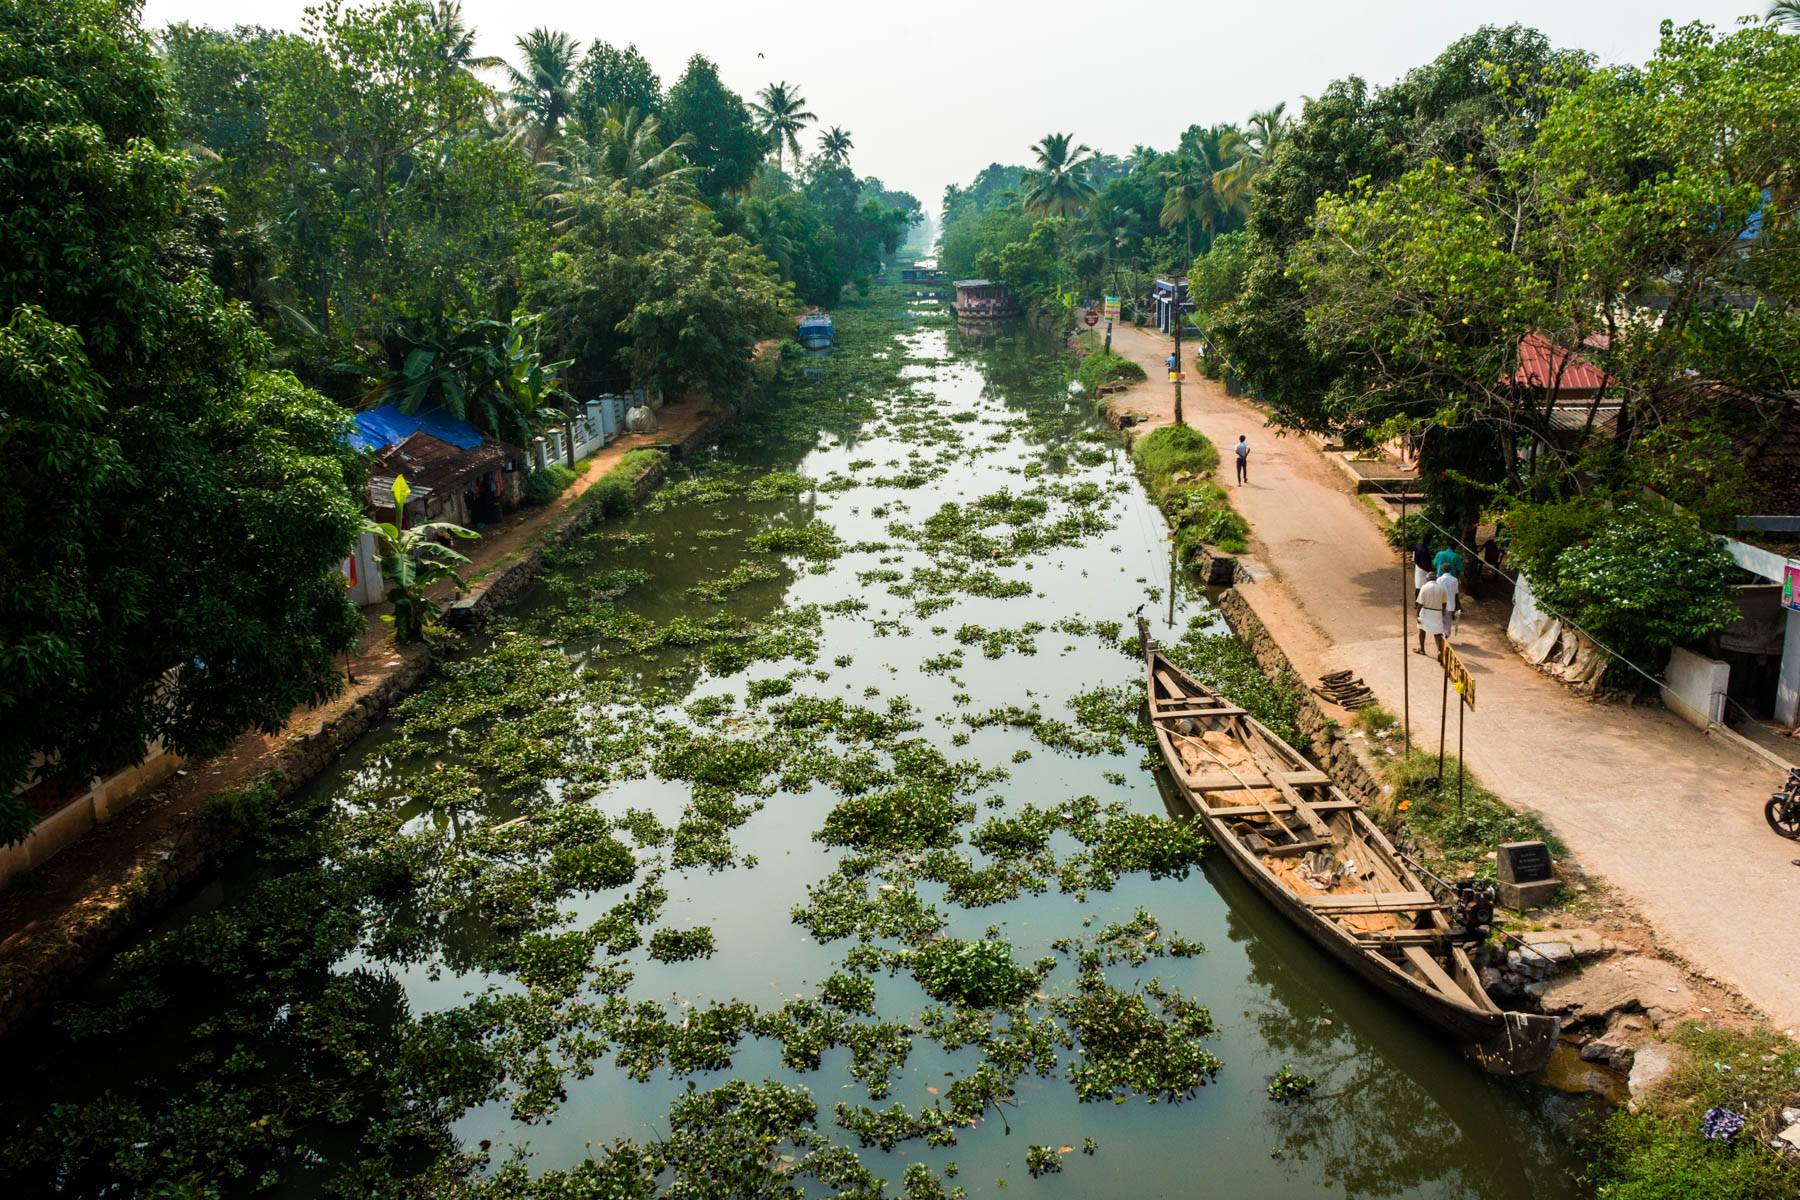 Kottayam boat jetty - The cheapest way to see the Alleppey backwaters in Kerala, India - Lost With Purpose